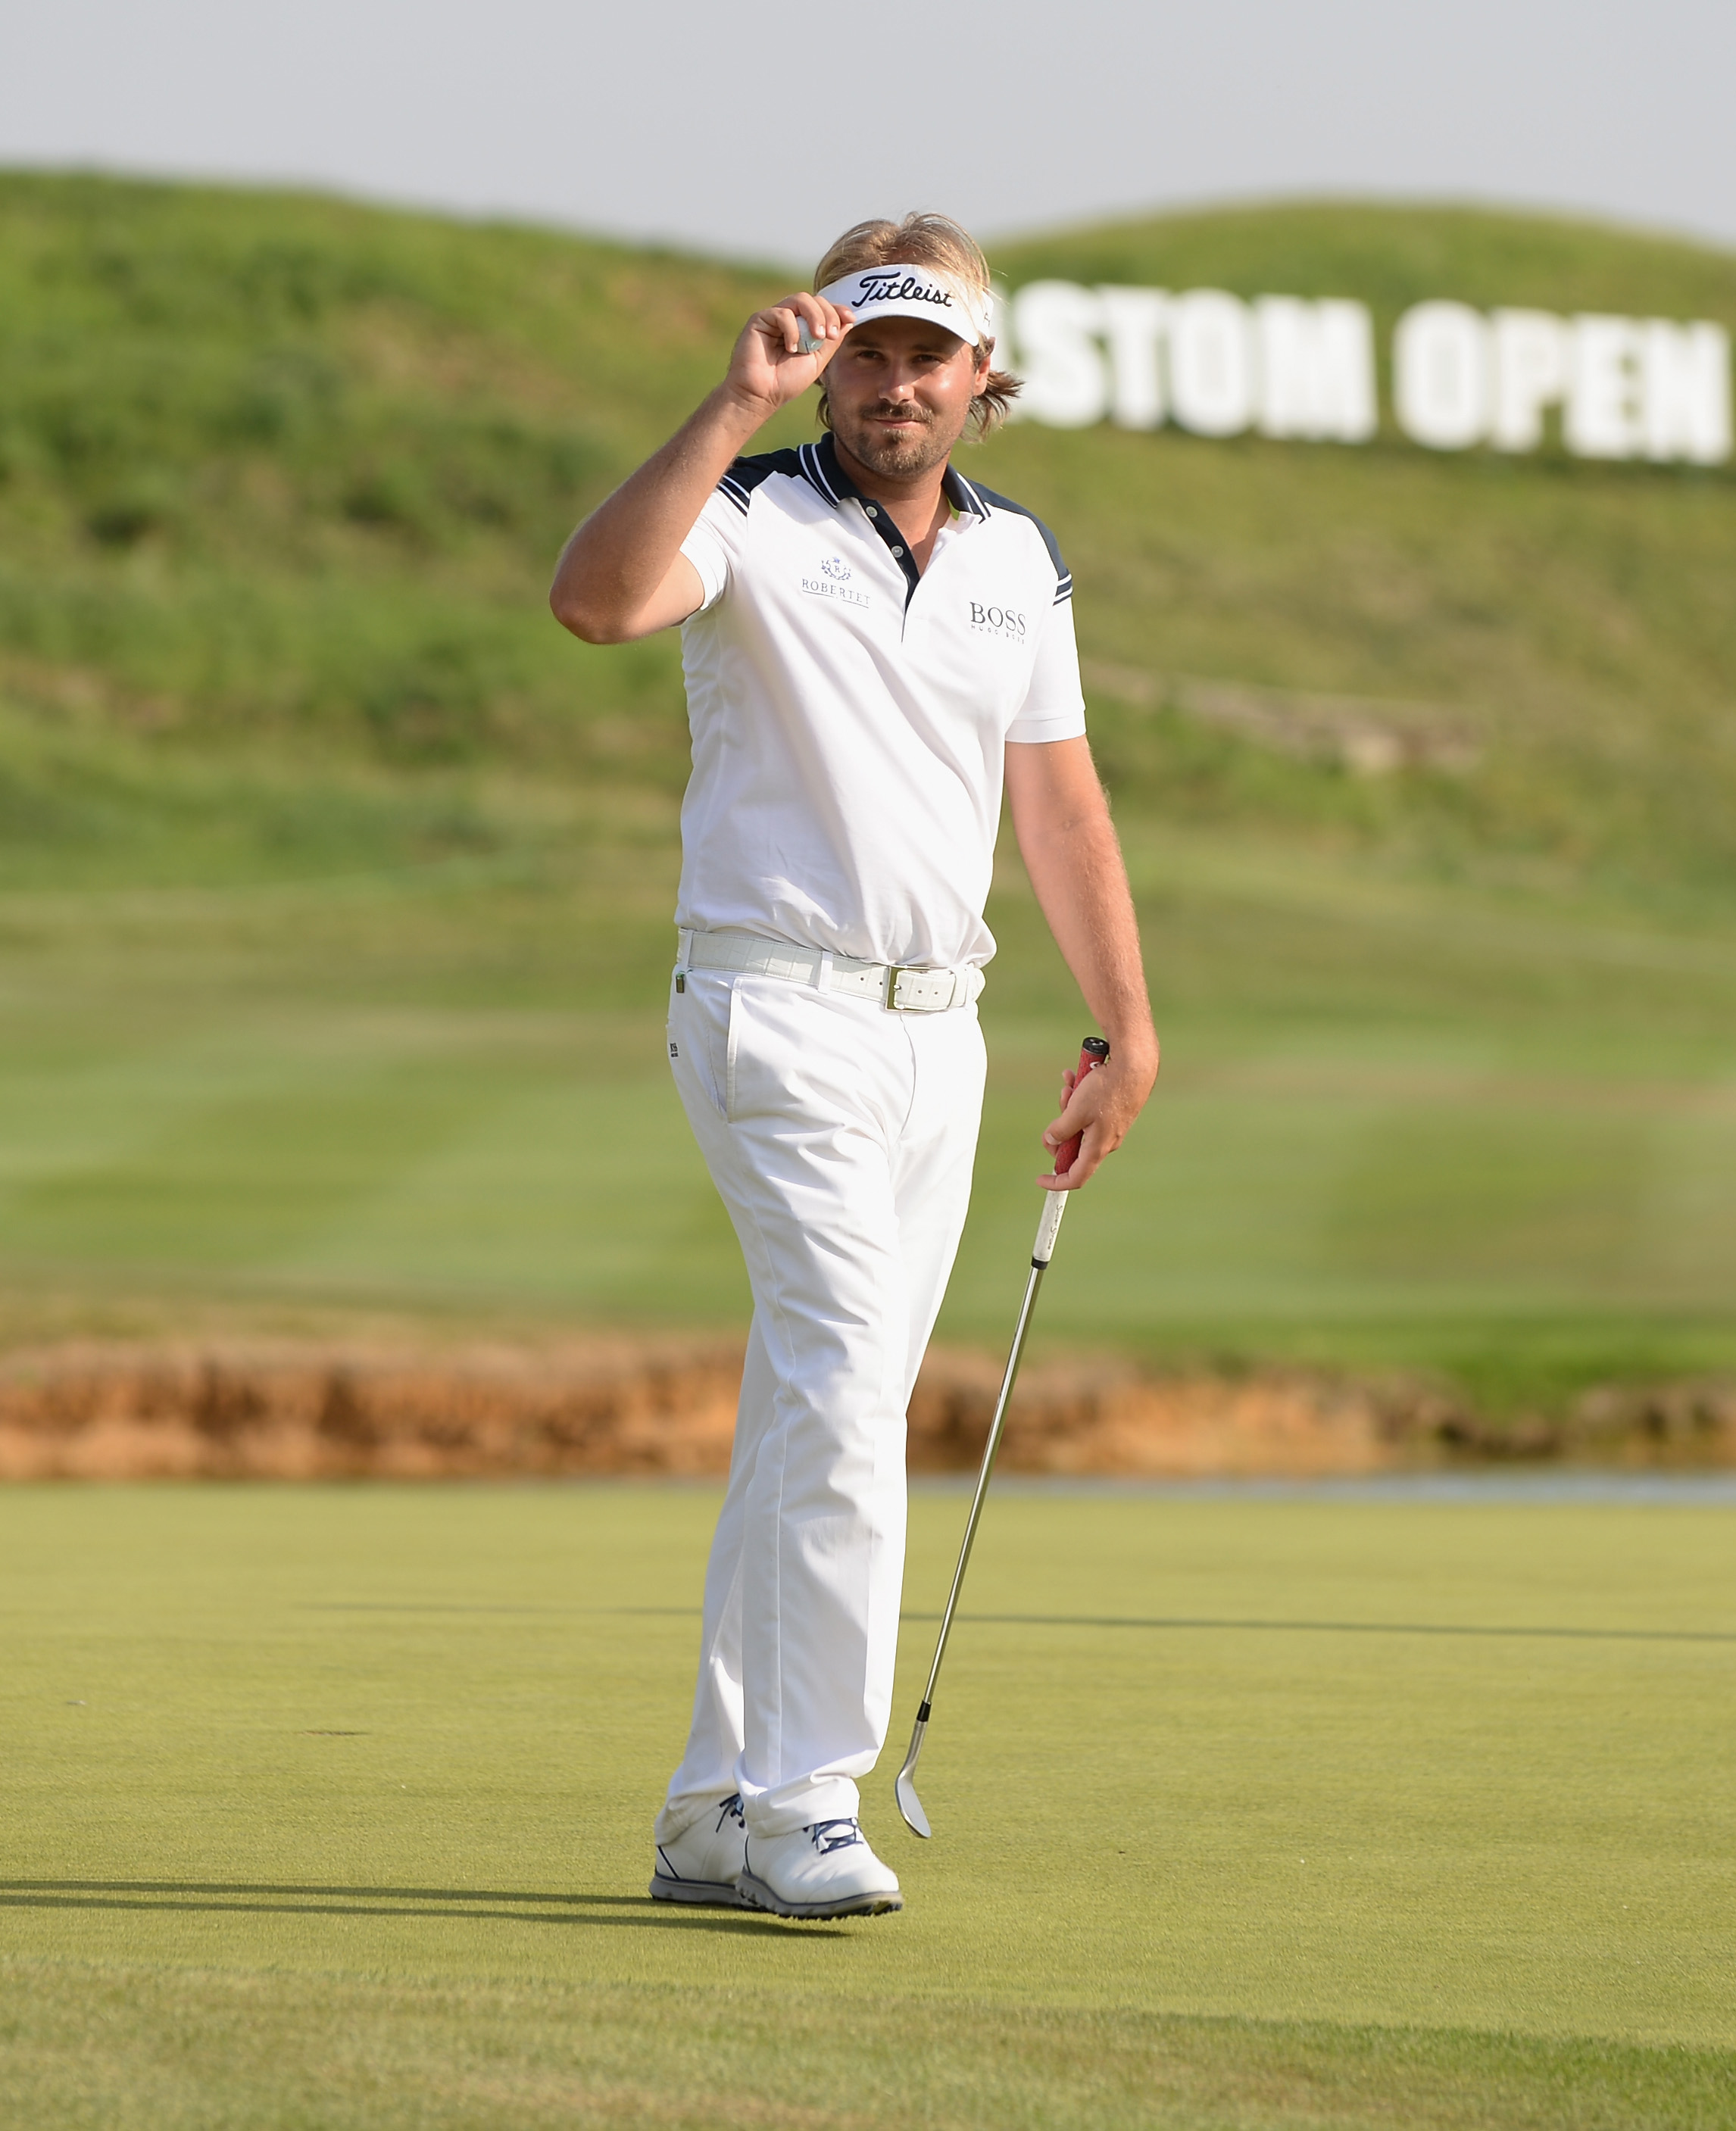 Victor Dubuisson of France acknowledges the applause from the gallery as he finishes at 4 under par during the Alstom Open de France - Day Two at Le Golf National on July 3, 2015 in Paris, France.